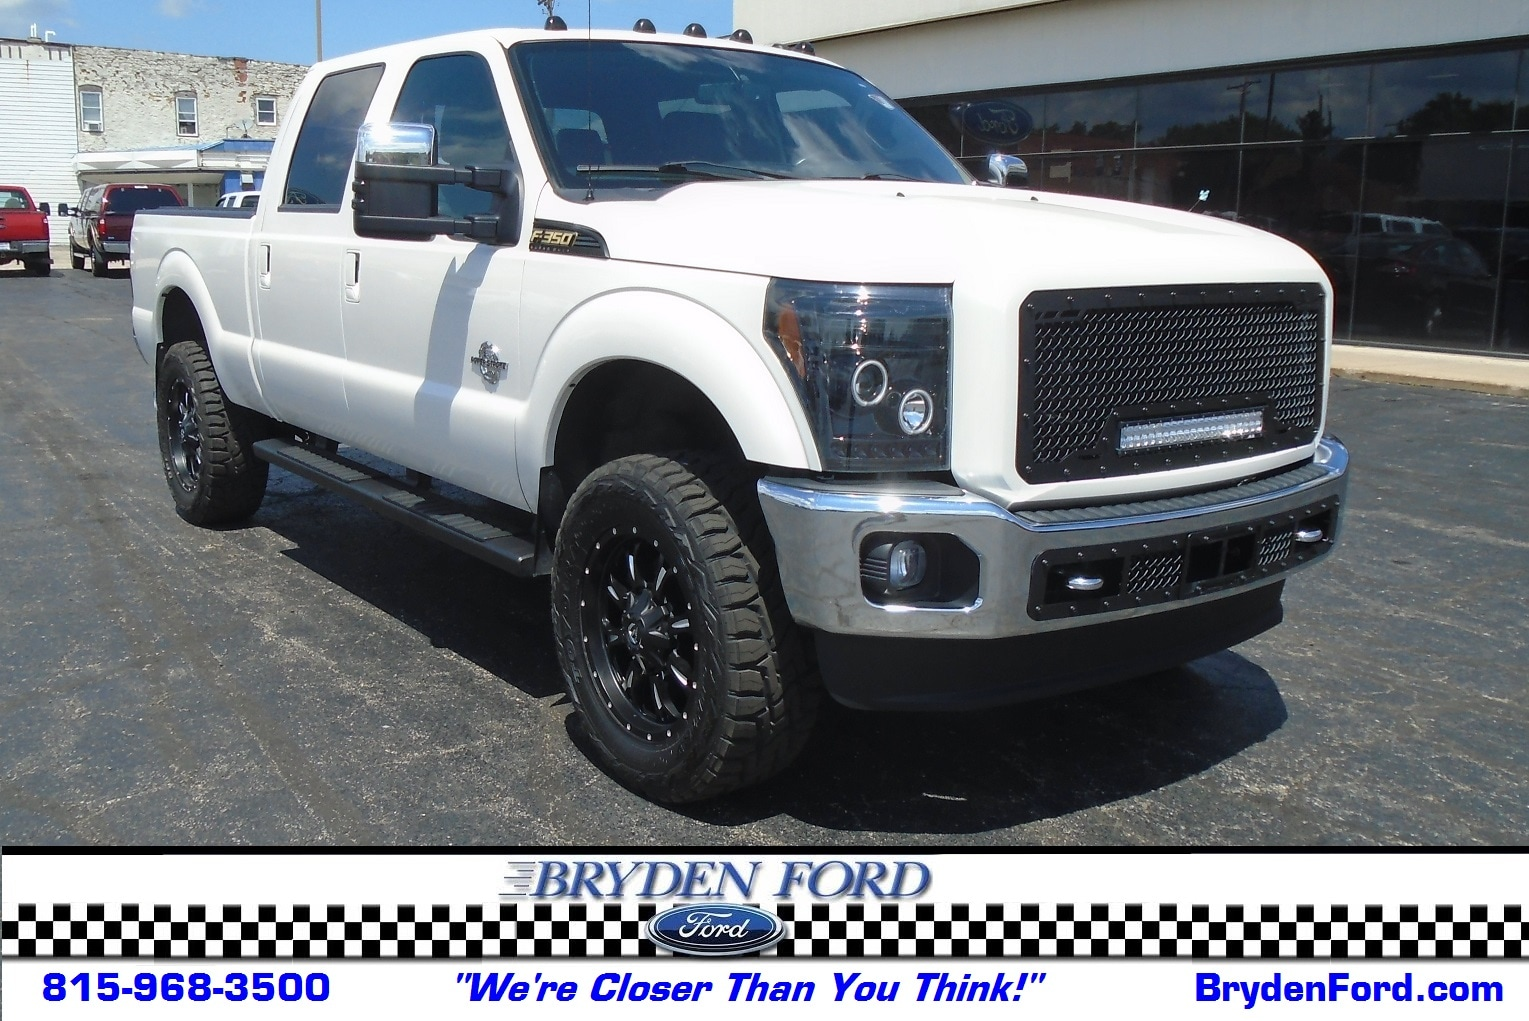 2014 Ford F350 Super Duty Lariat 4X4 6.5' Short Bed Truck